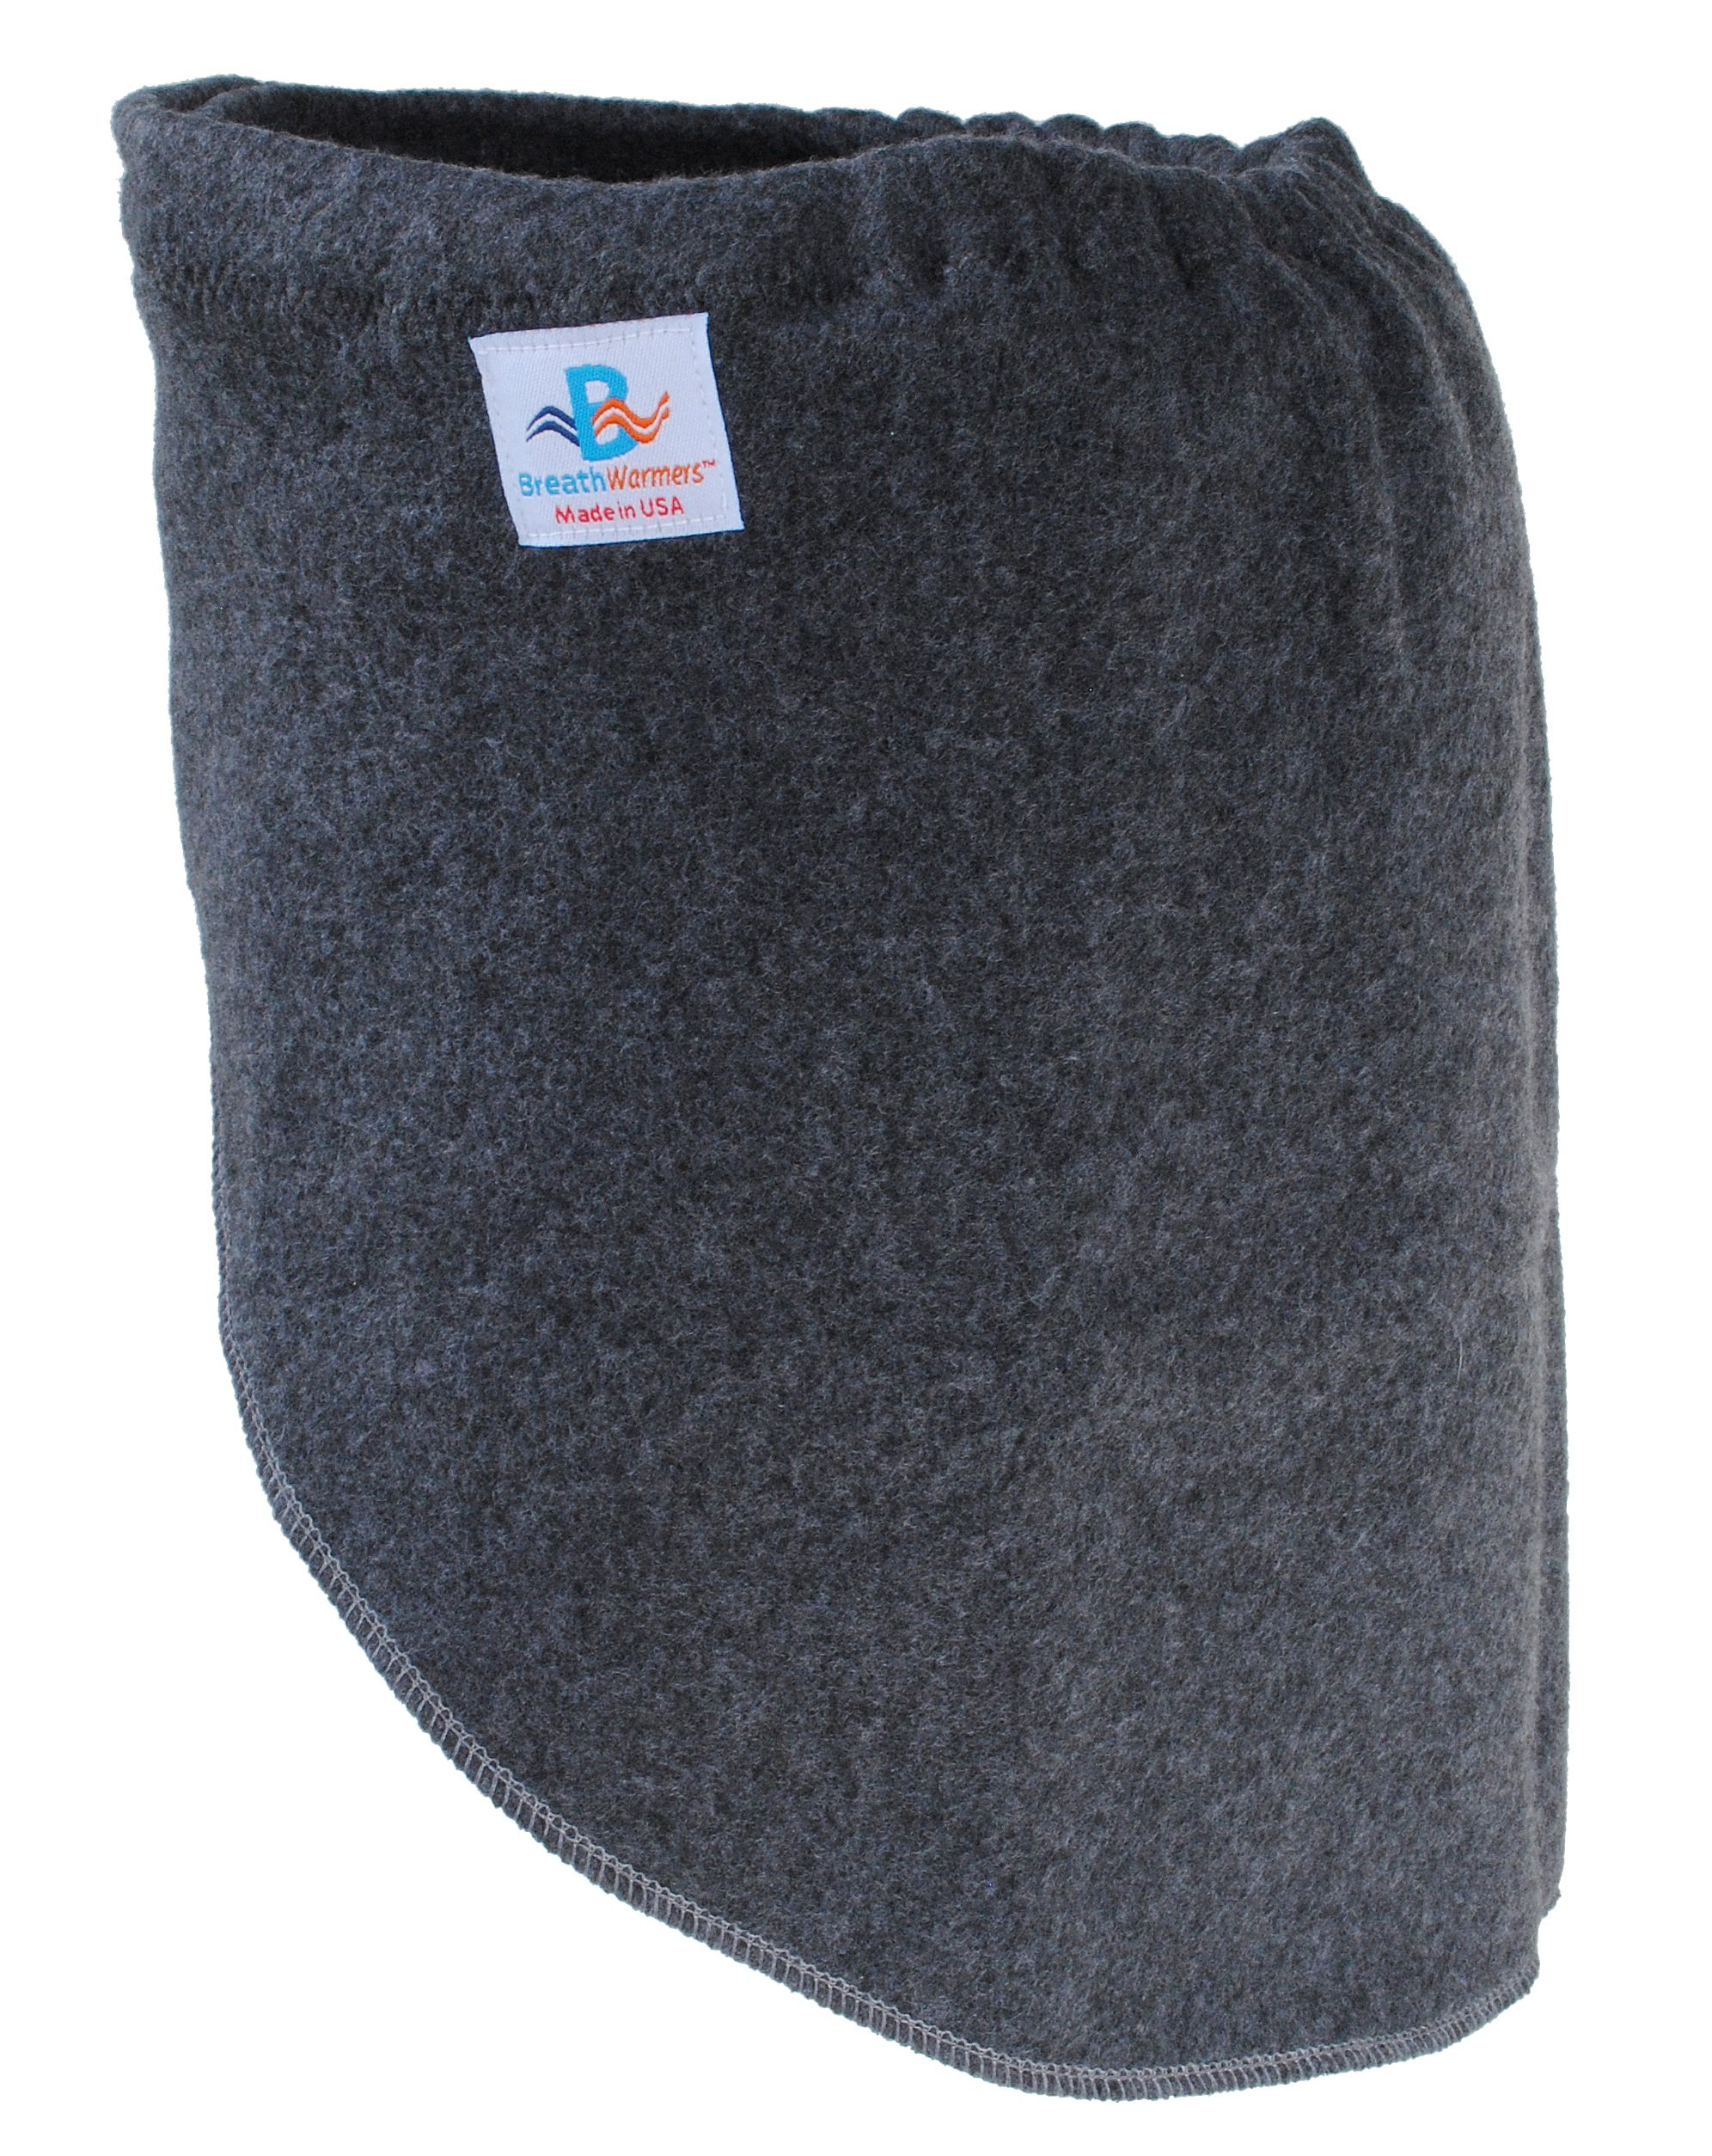 Breathwarmers, Cold-air Warming Scarf, One Size, Dark Grey (Dark Grey) by Breathwarmers